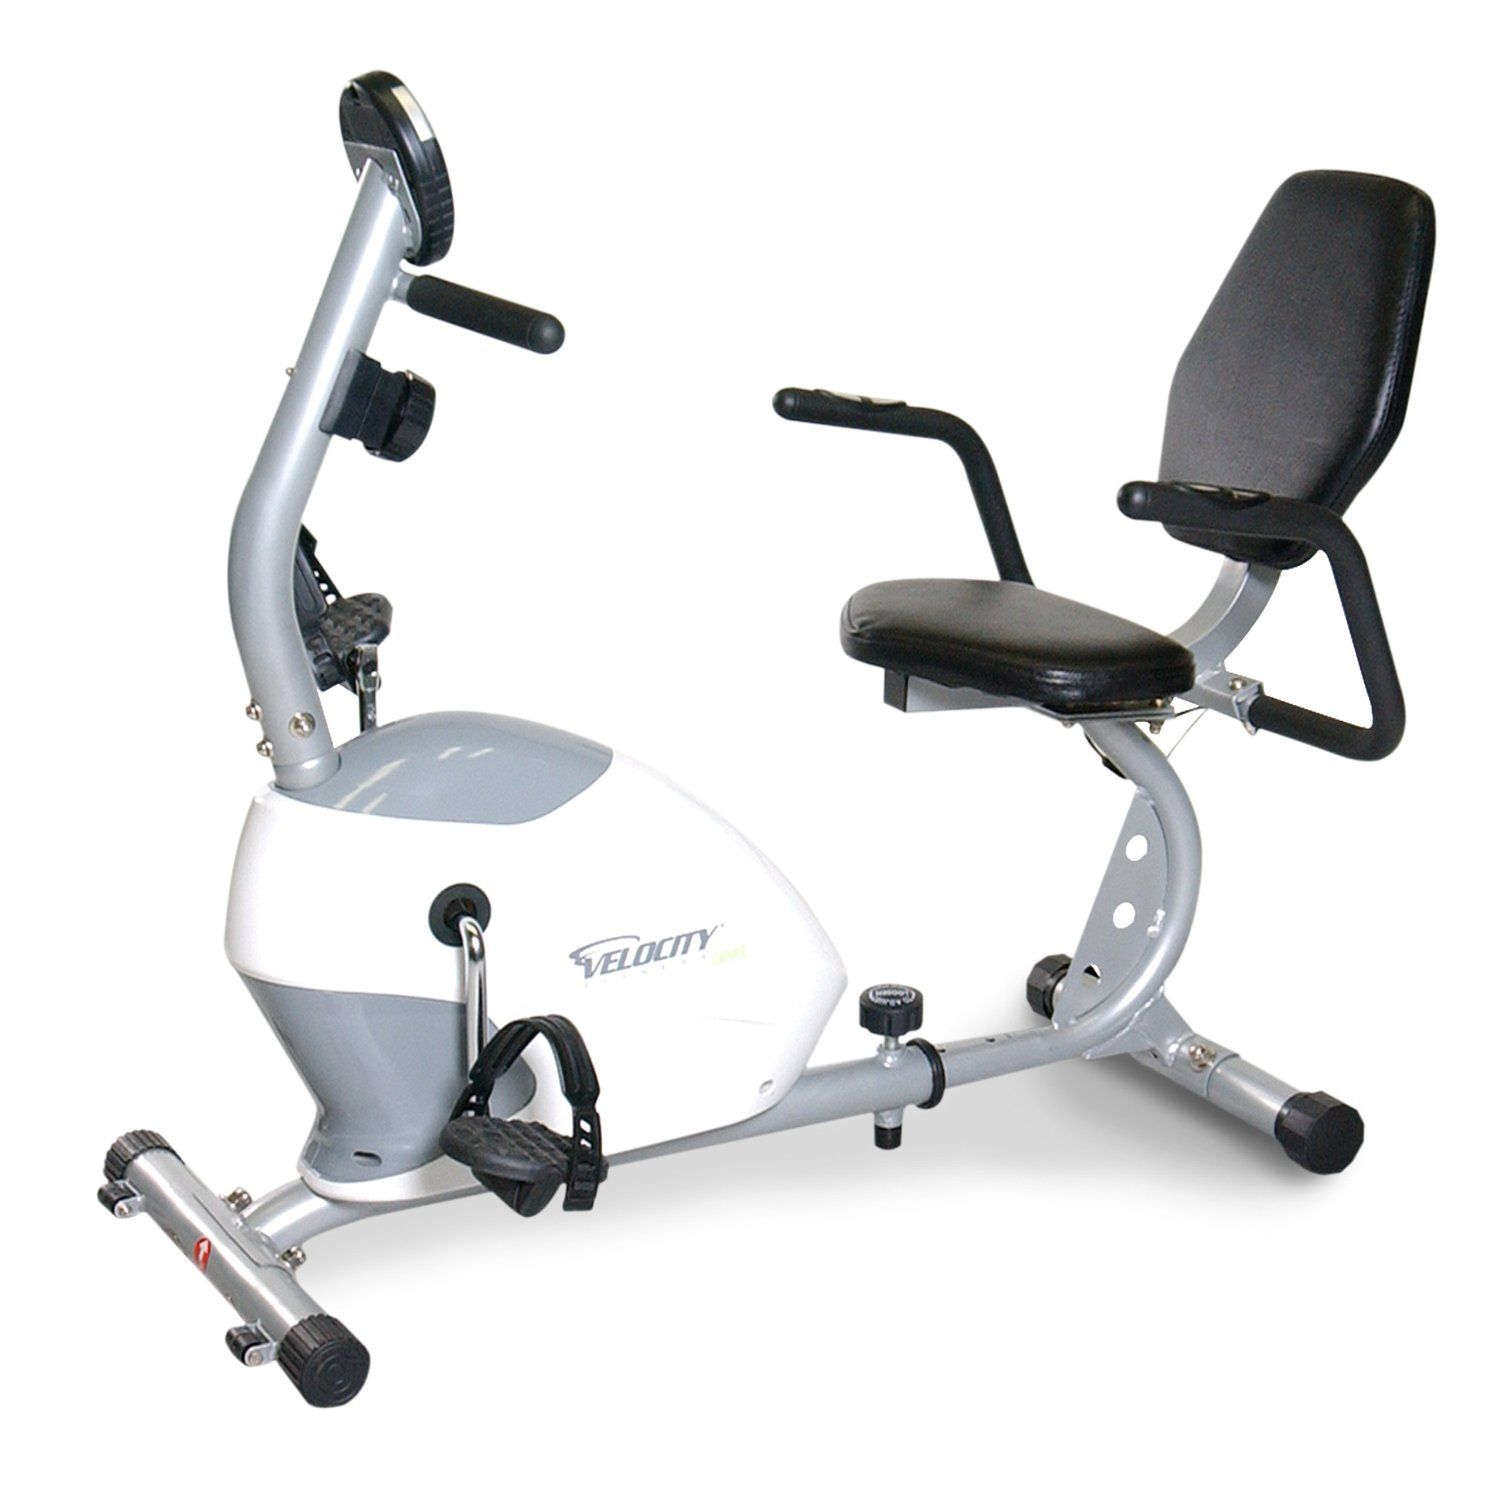 Top 10 Best Recumbent Bike Reviews Your 2020 Guide